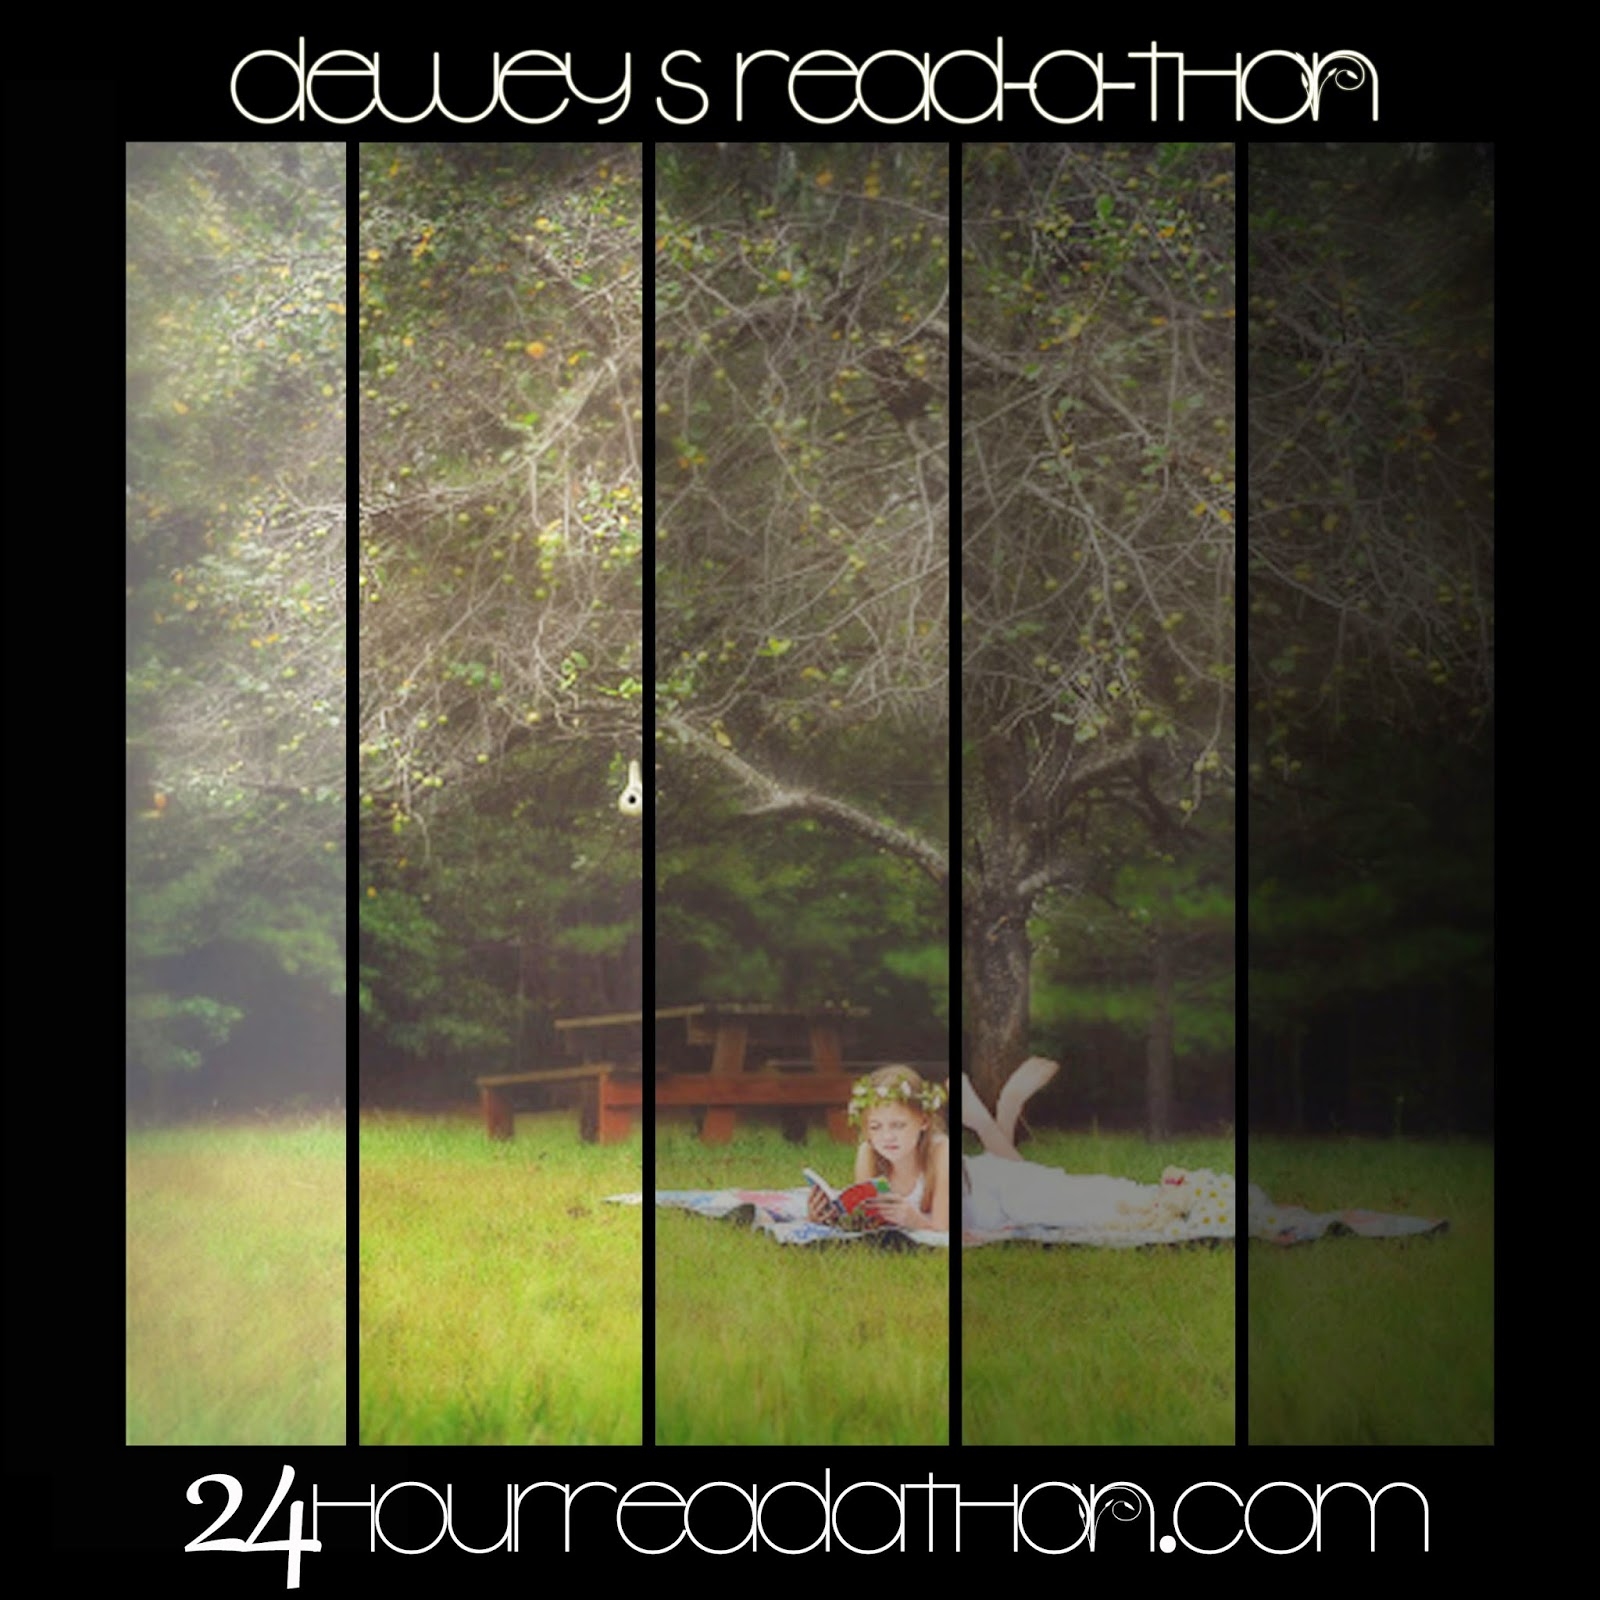 Dewey's 24 hour readathon